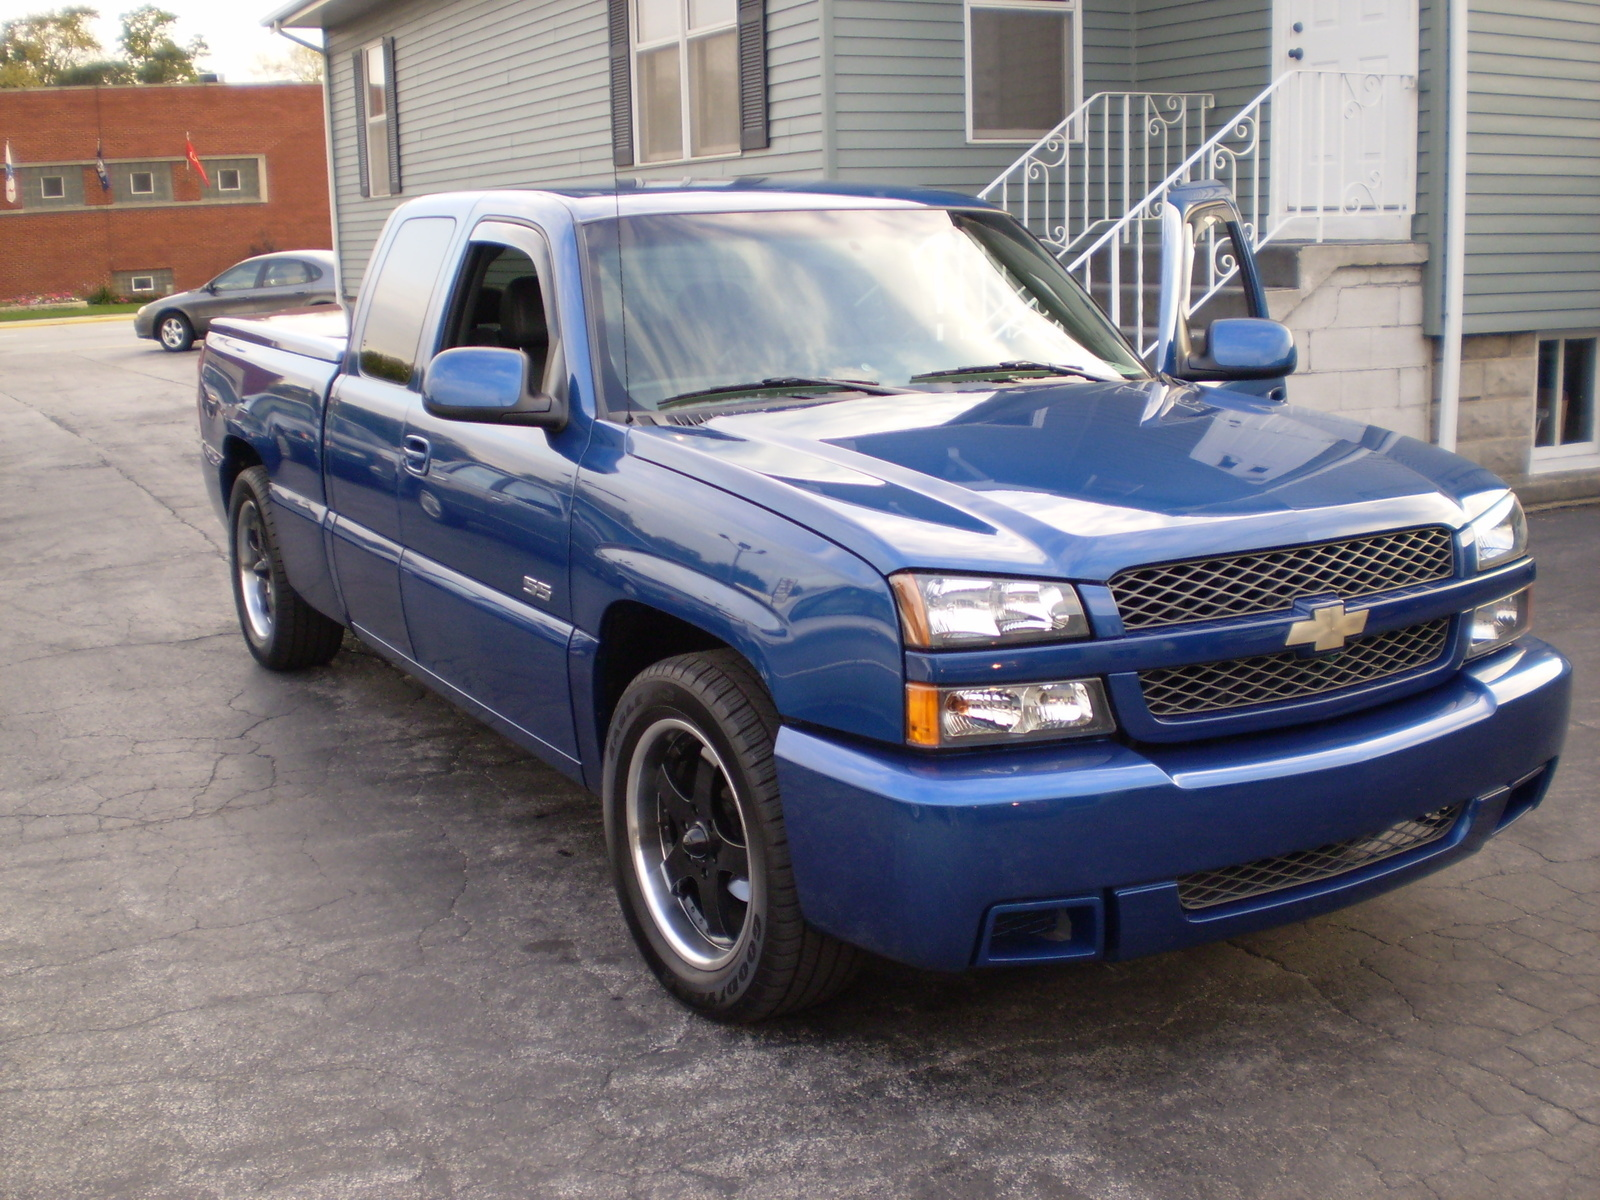 2003 chevrolet silverado ss overview cargurus. Black Bedroom Furniture Sets. Home Design Ideas